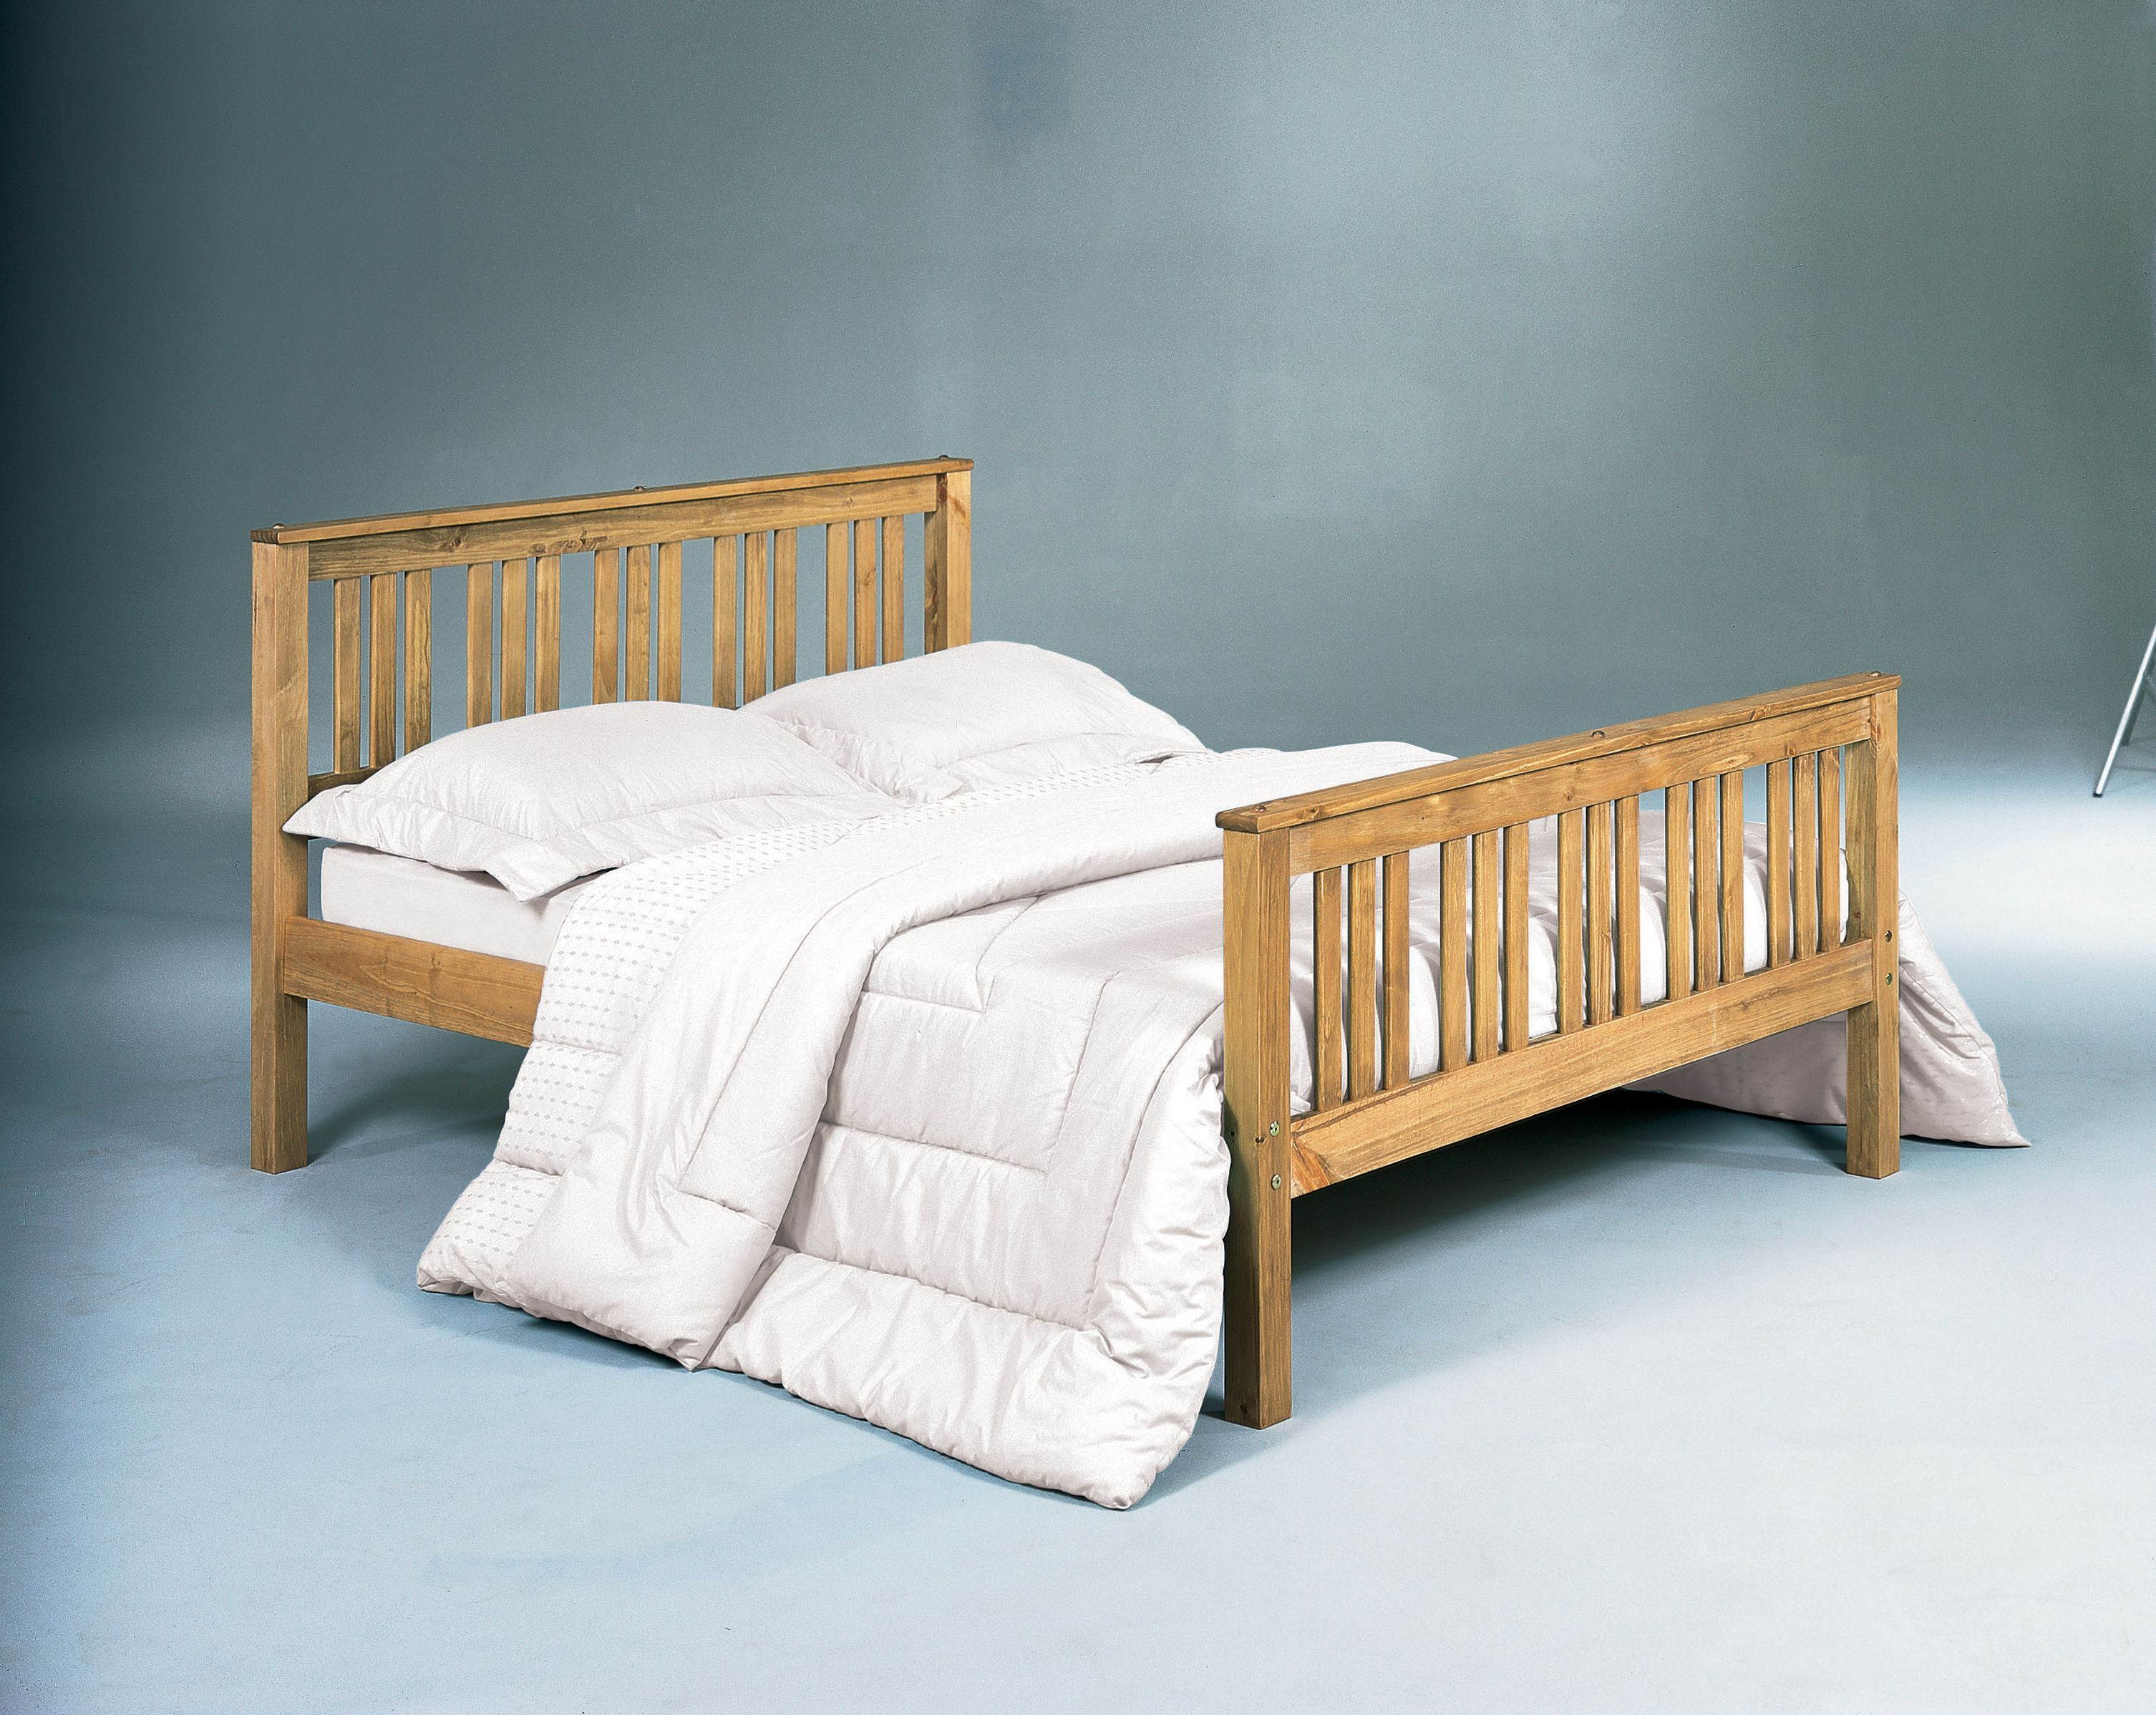 Shaker Antique Wax Finish Solid Pine Shaker Style Bed Available